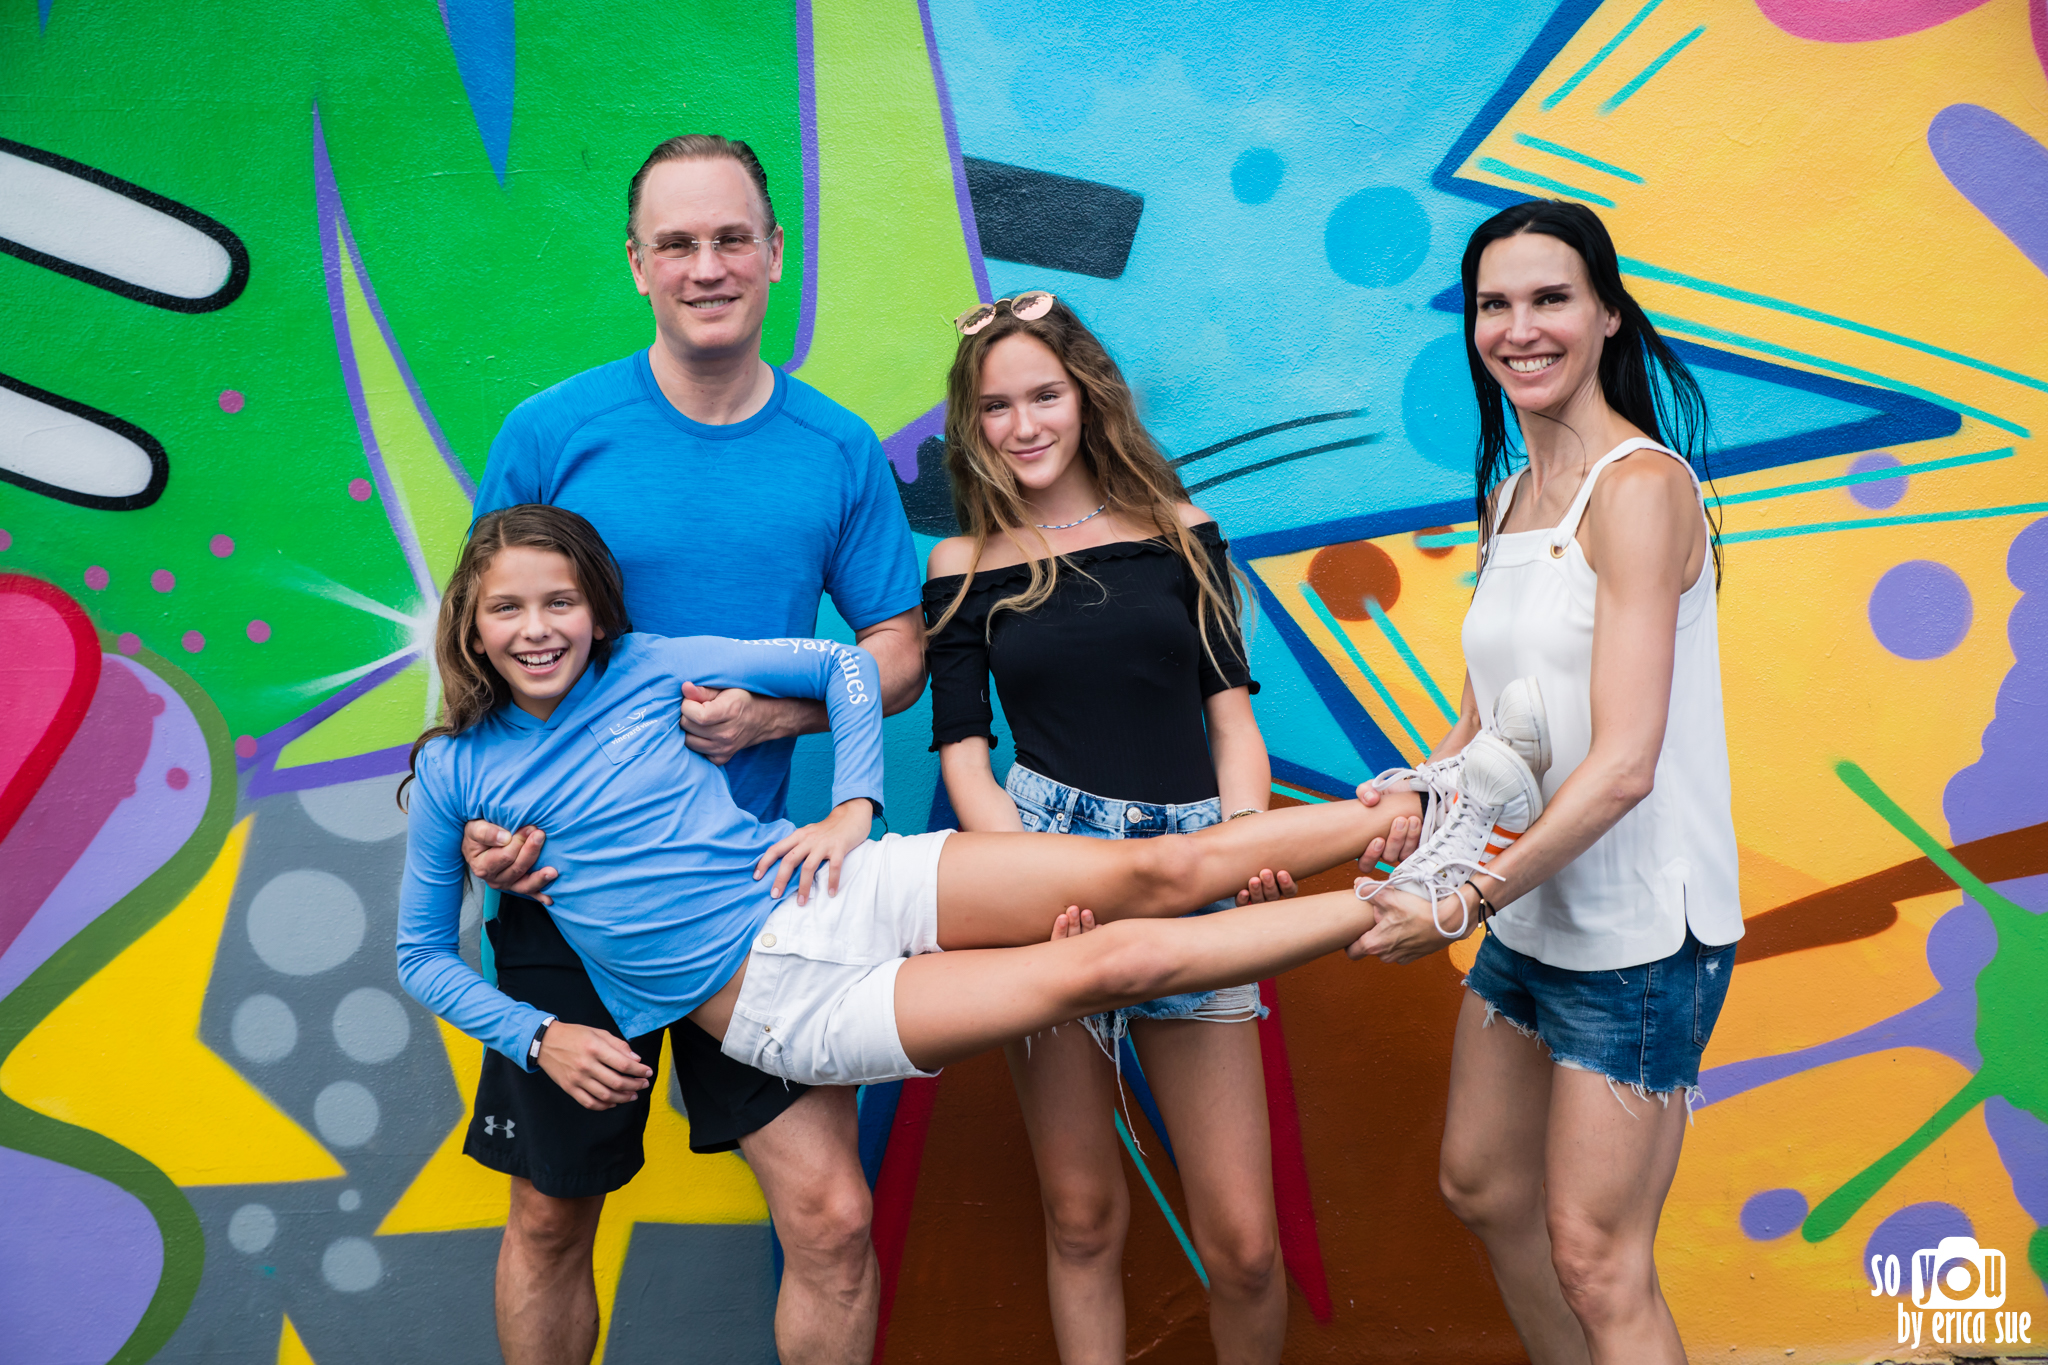 so-you-by-erica-sue-wynwood-walls-miami-photography-mitzvah-pre-shoot-5303.jpg